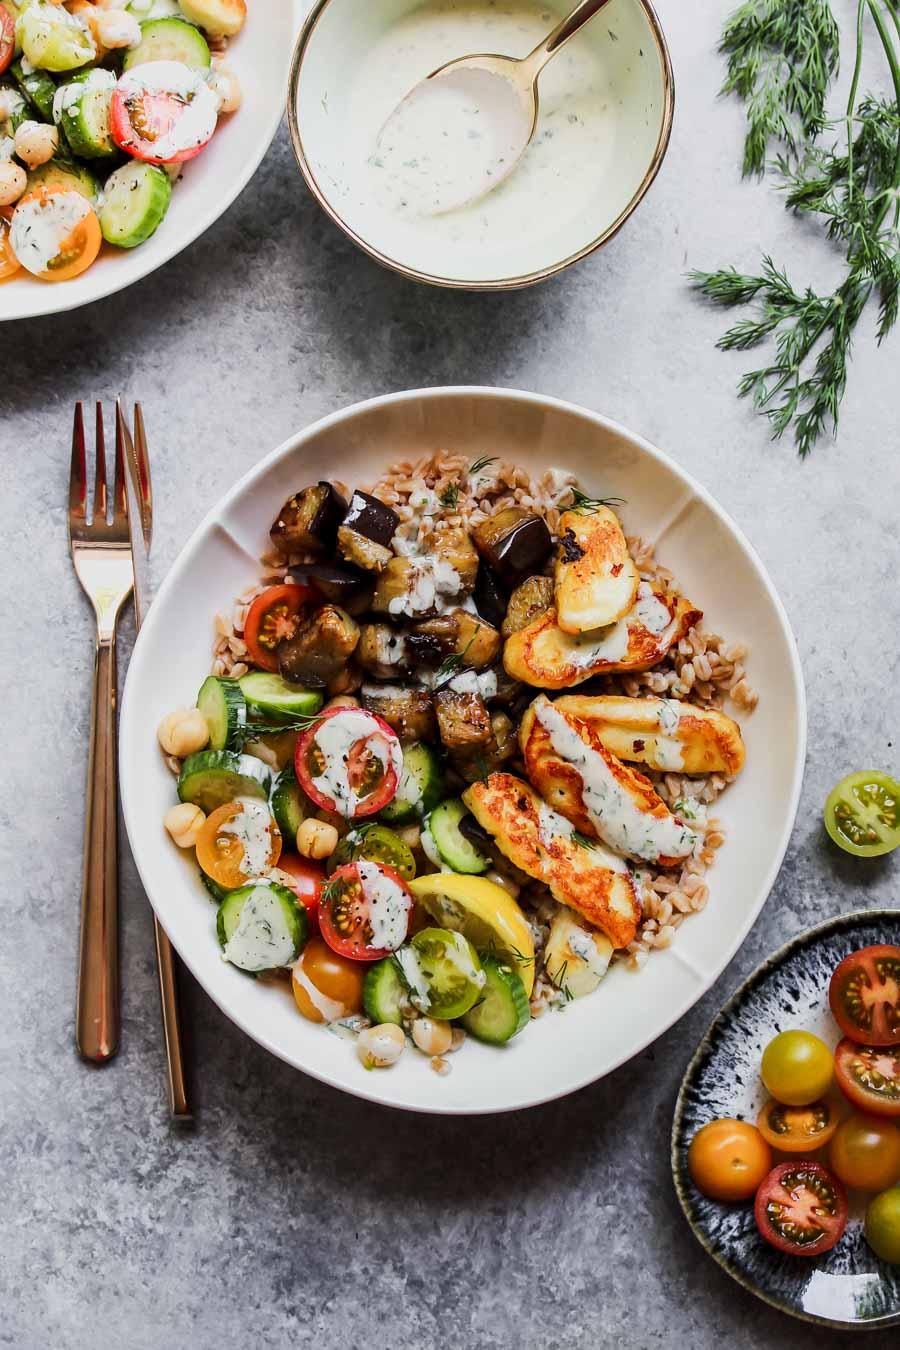 Mediterranean Eggplant and Halloumi Bowls with Lemon-Dill Sauce